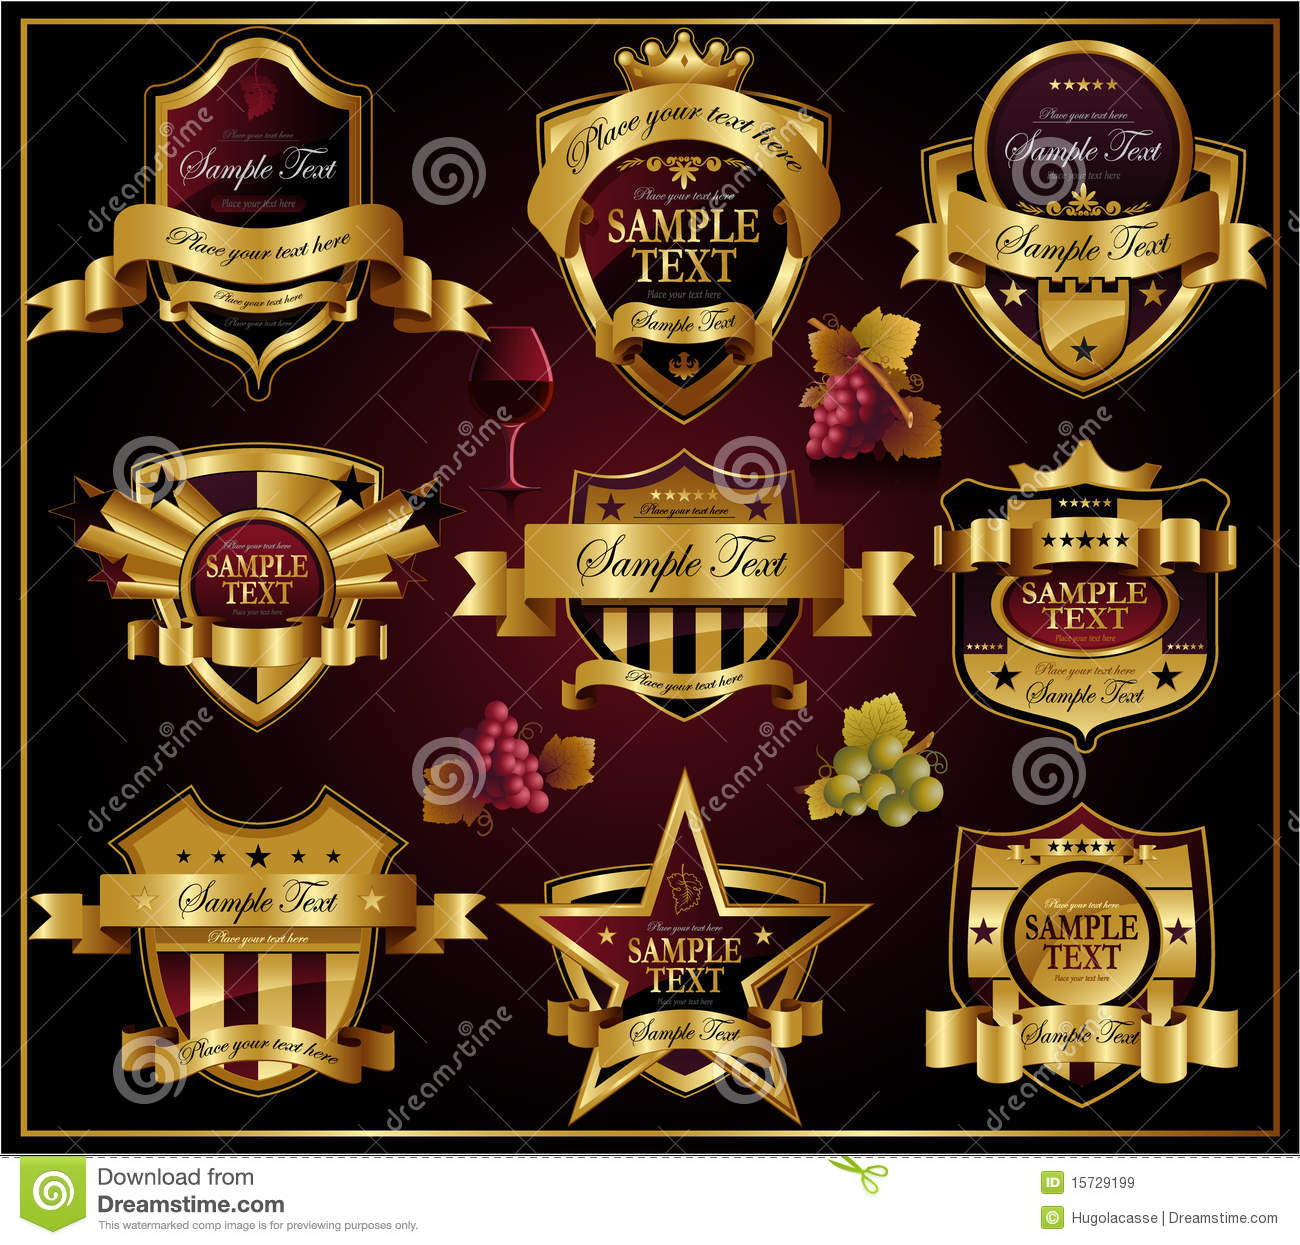 Shield design set royalty free stock photos image 5051988 - Royalty Free Stock Photo Decorative Design Illustration Ornate Shield